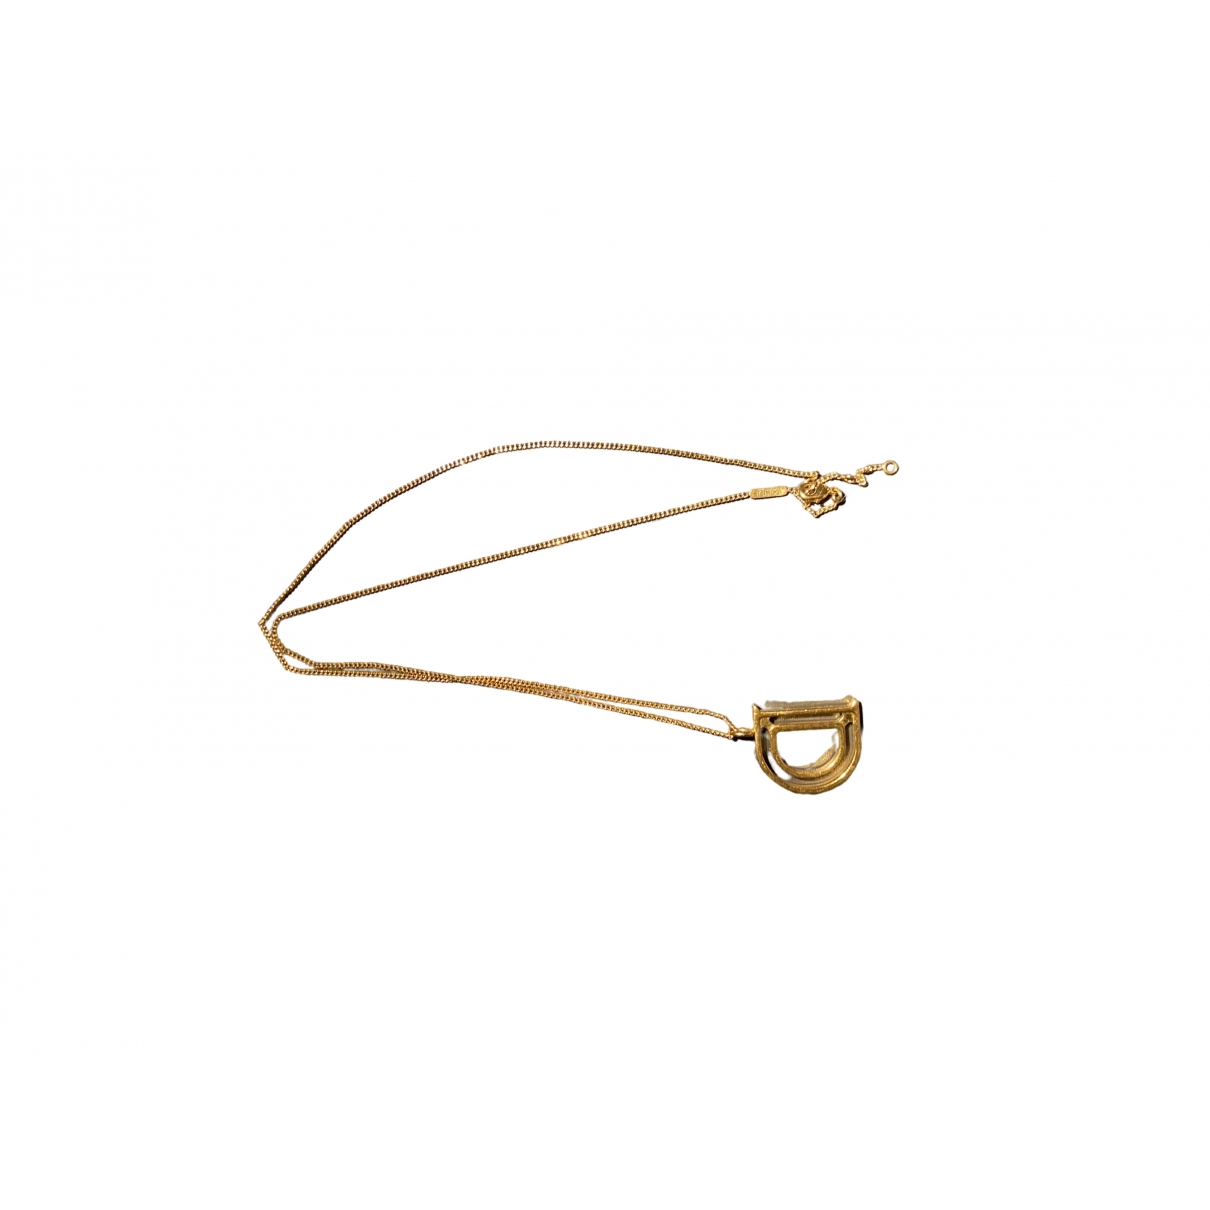 Chloé \N Gold Metal necklace for Women \N